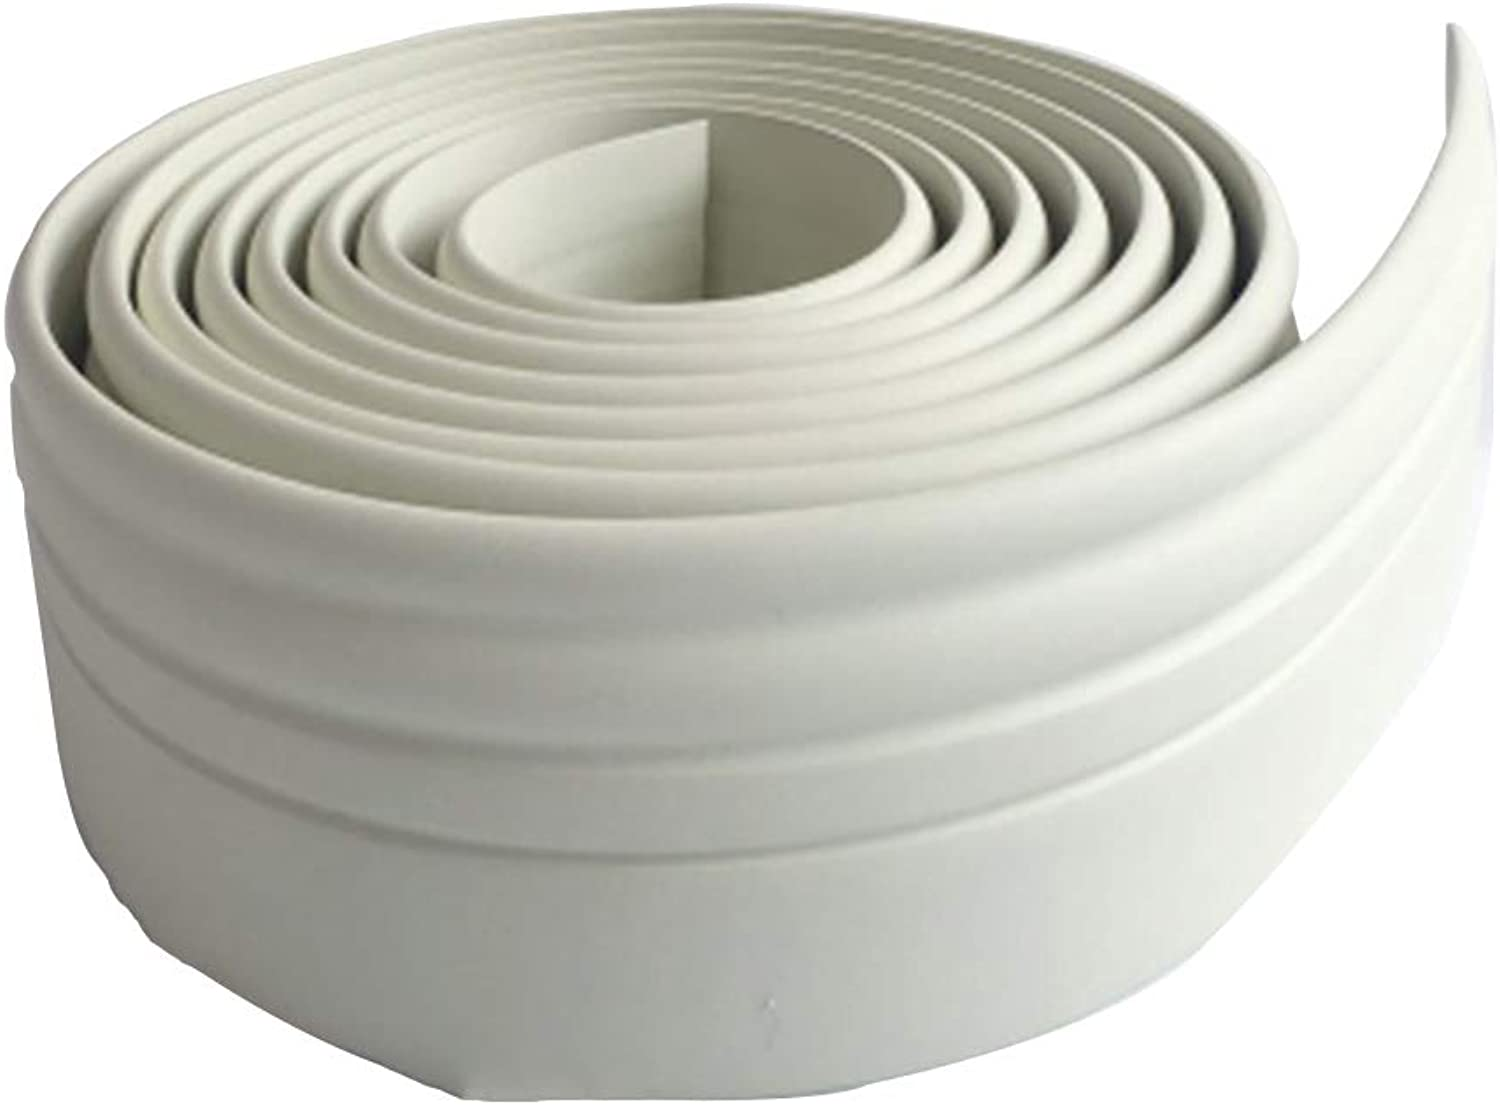 Rubber Seal Foam Tape Foam Seal Strip, SelfAdhesive Wall Sticker, European Style Soft 2 M Thick Decorative Strips, Thickness 1Cm,White,200  10  1Cm